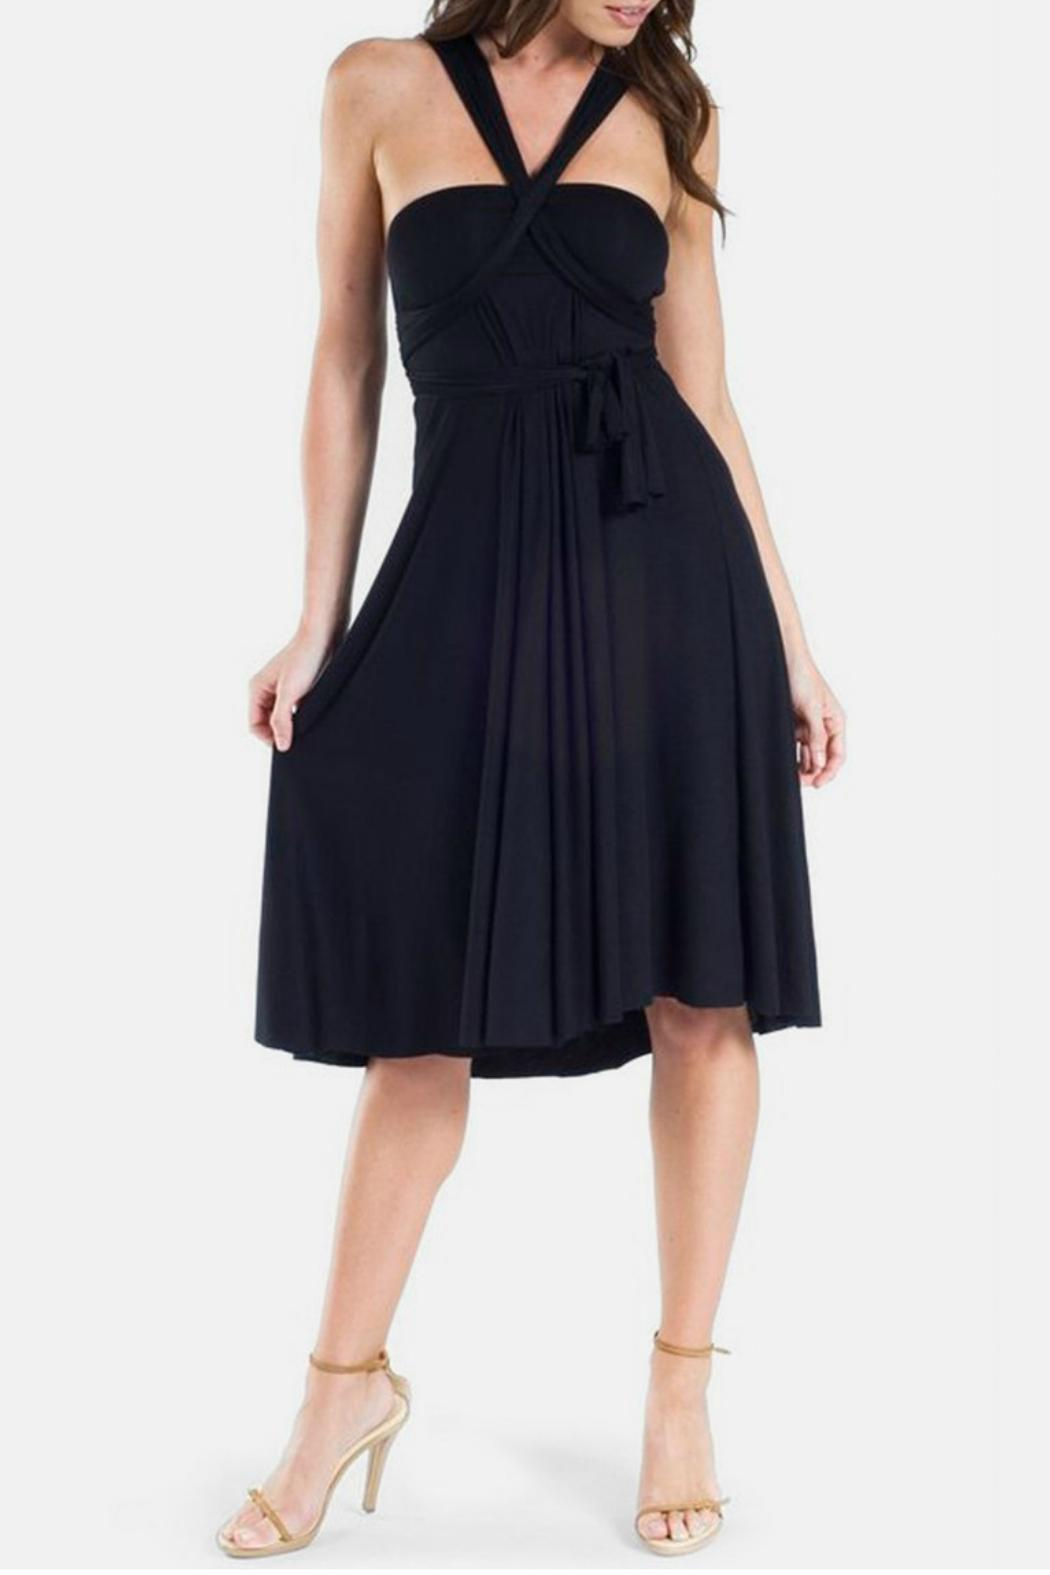 Beth Friedman Convertible Dress & Skirt - Front Cropped Image